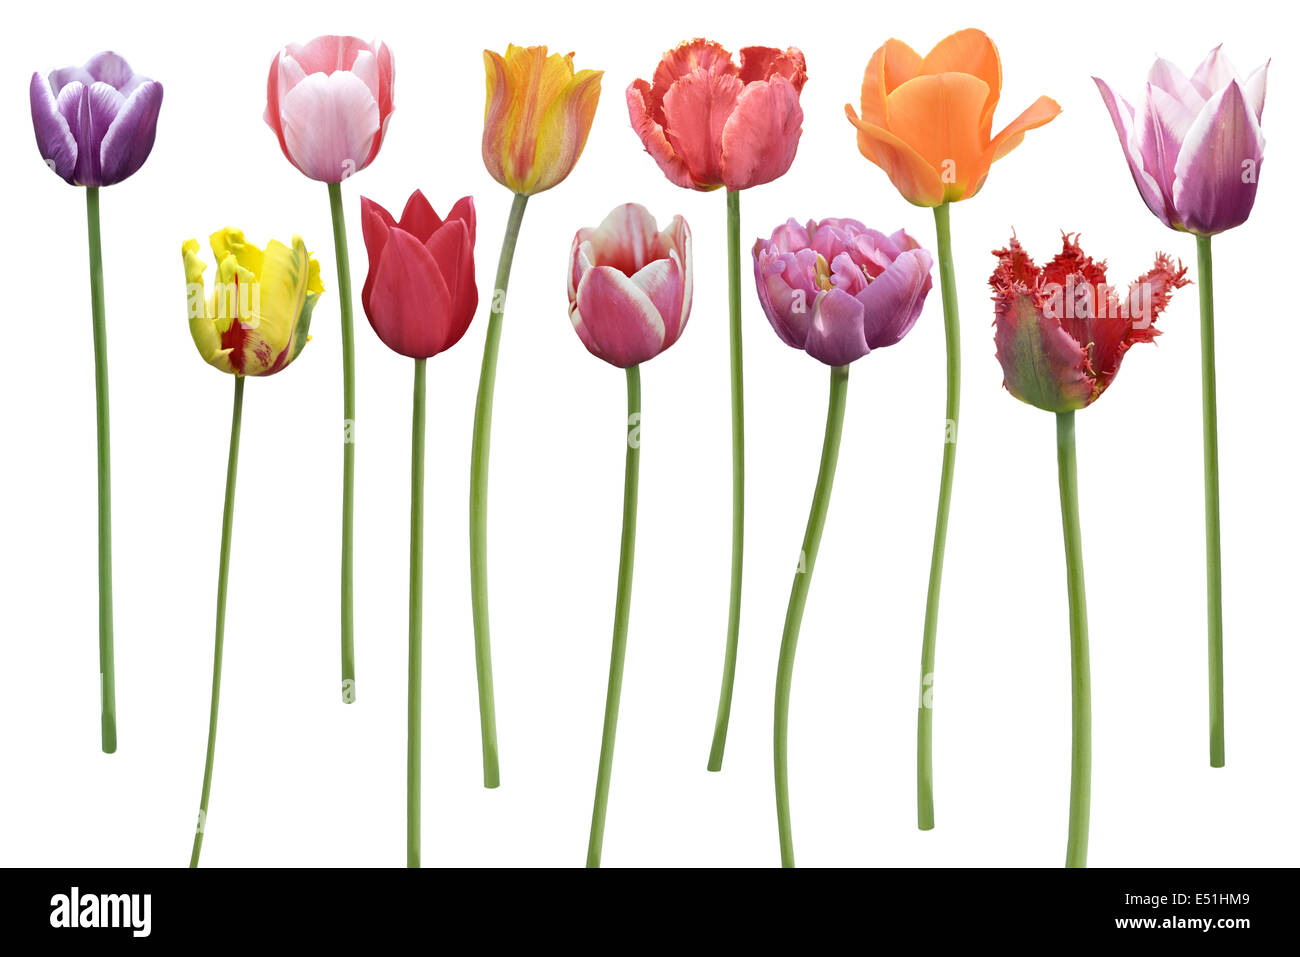 Tulips Flowers In A Row Stock Photo